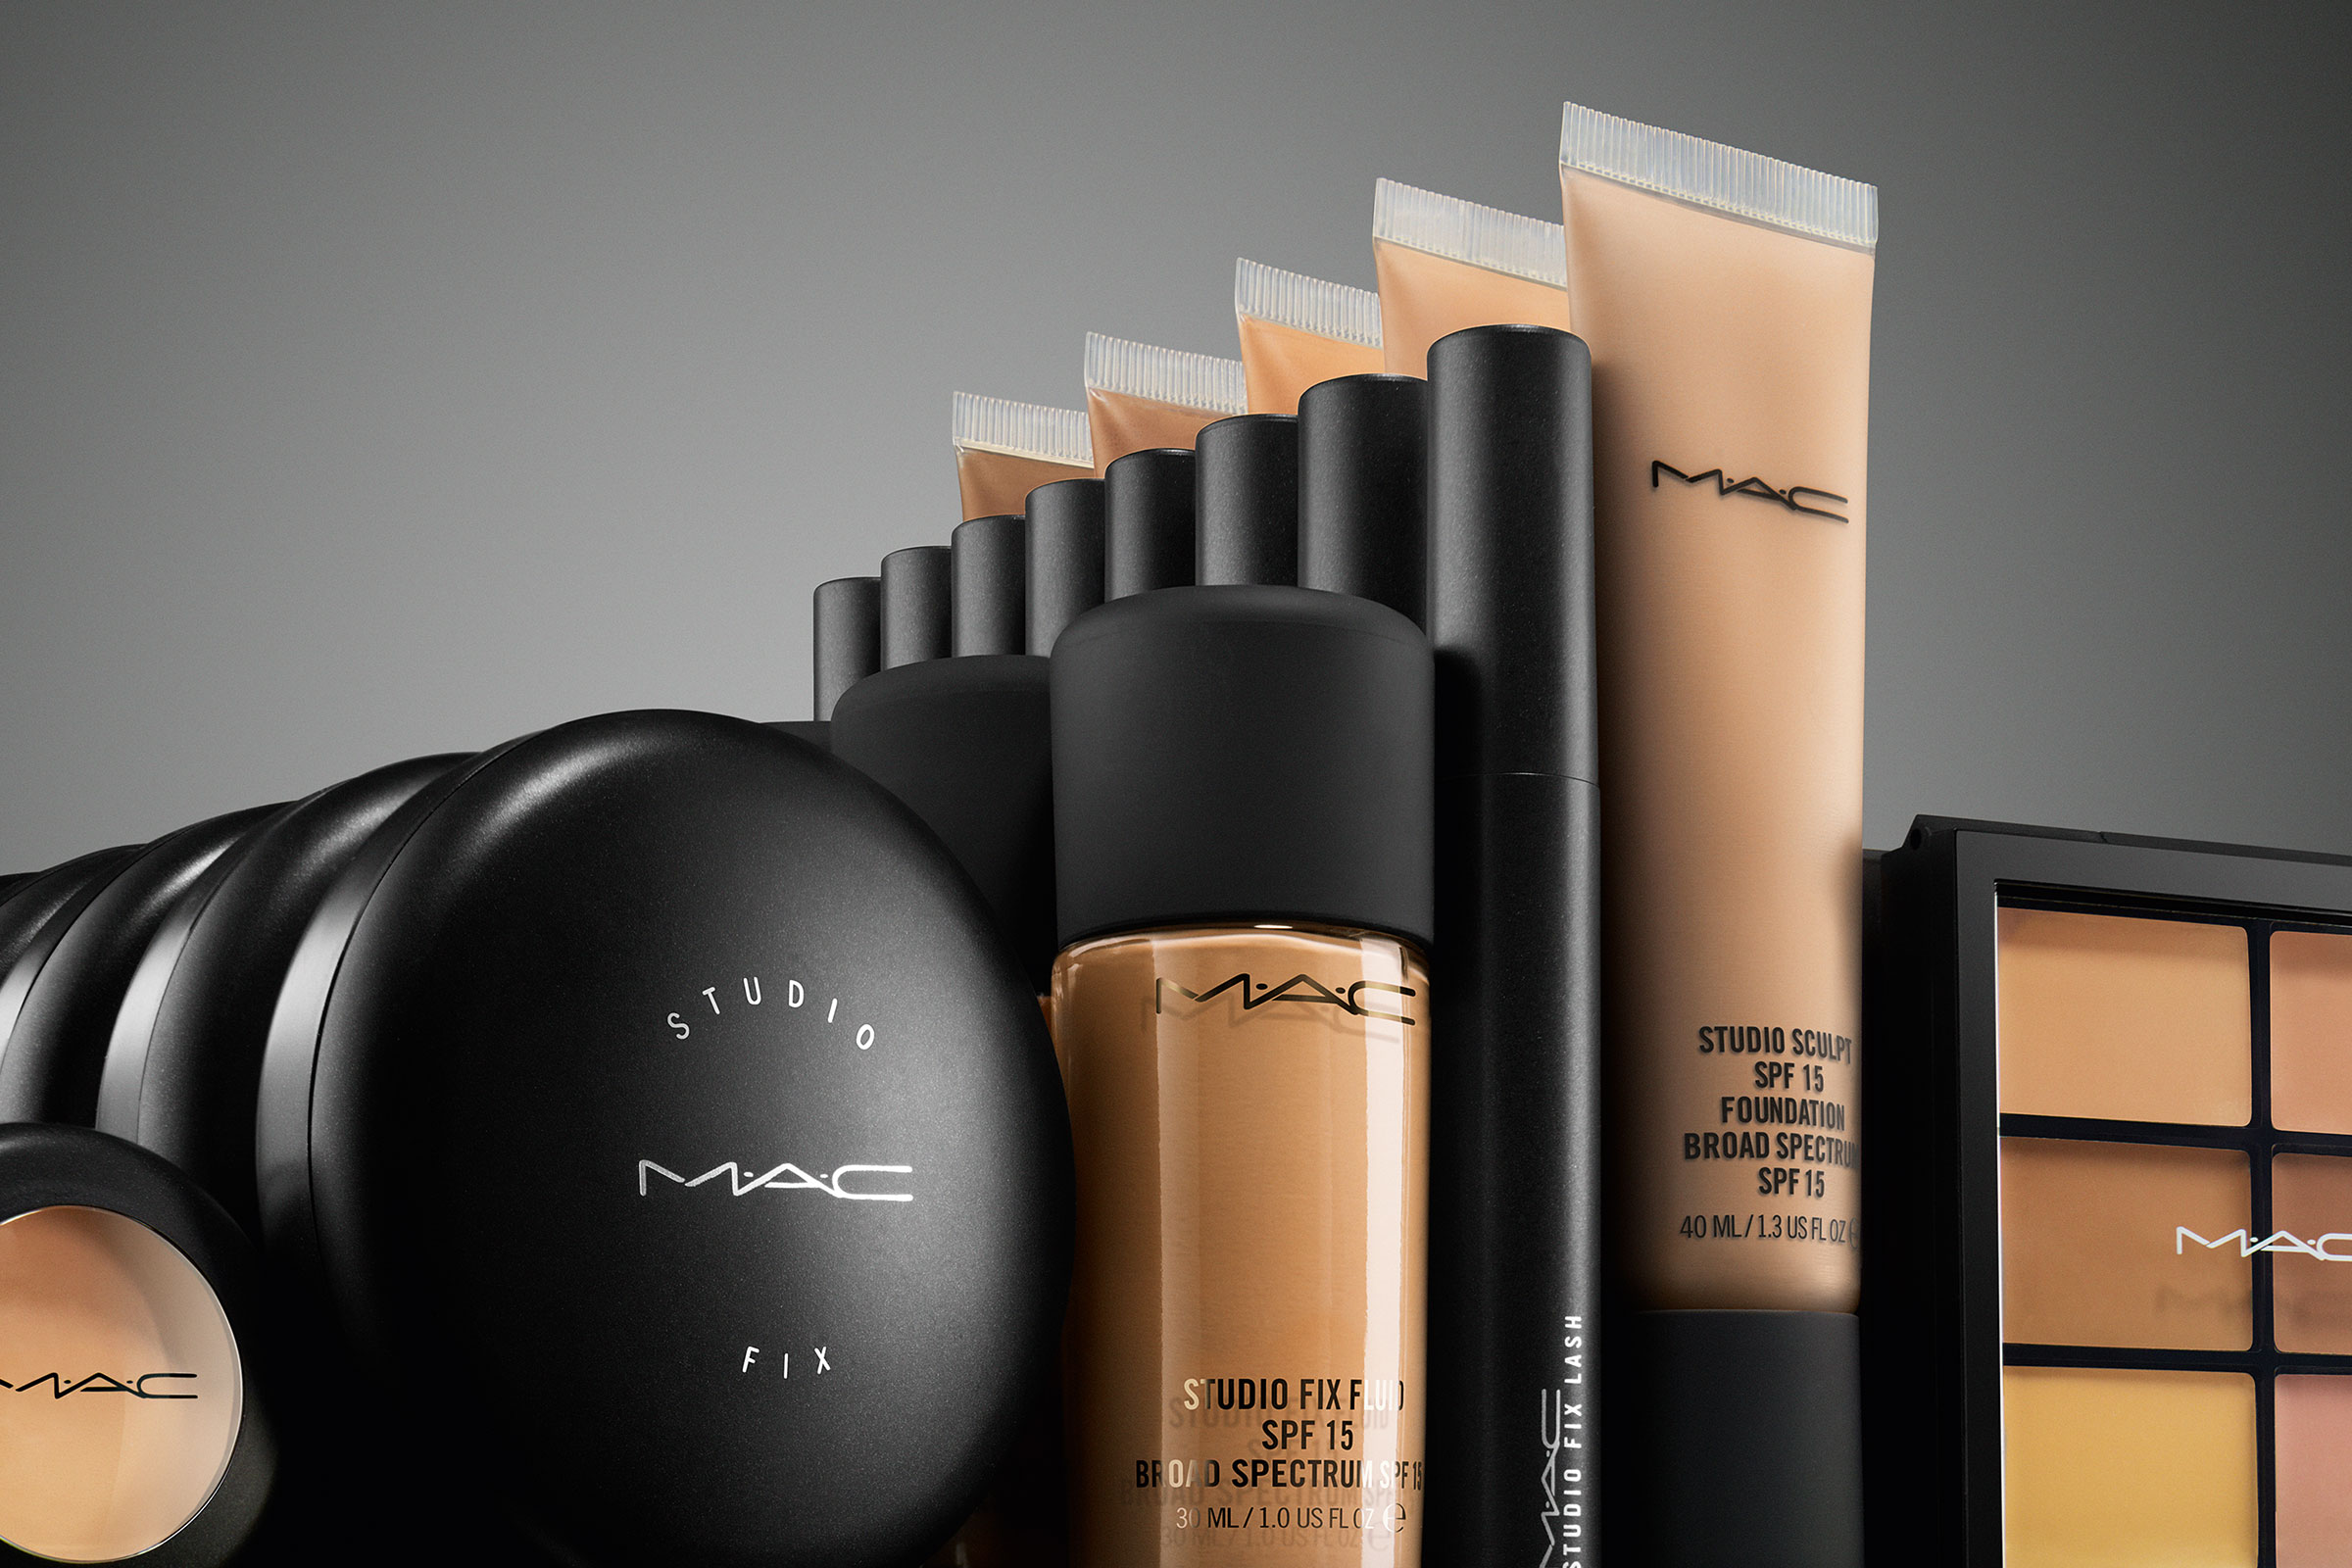 mac cosmetics By providing the recipient's mobile number, you consent to initiate one (1) text message from cashstar to the recipient with the egift card link.